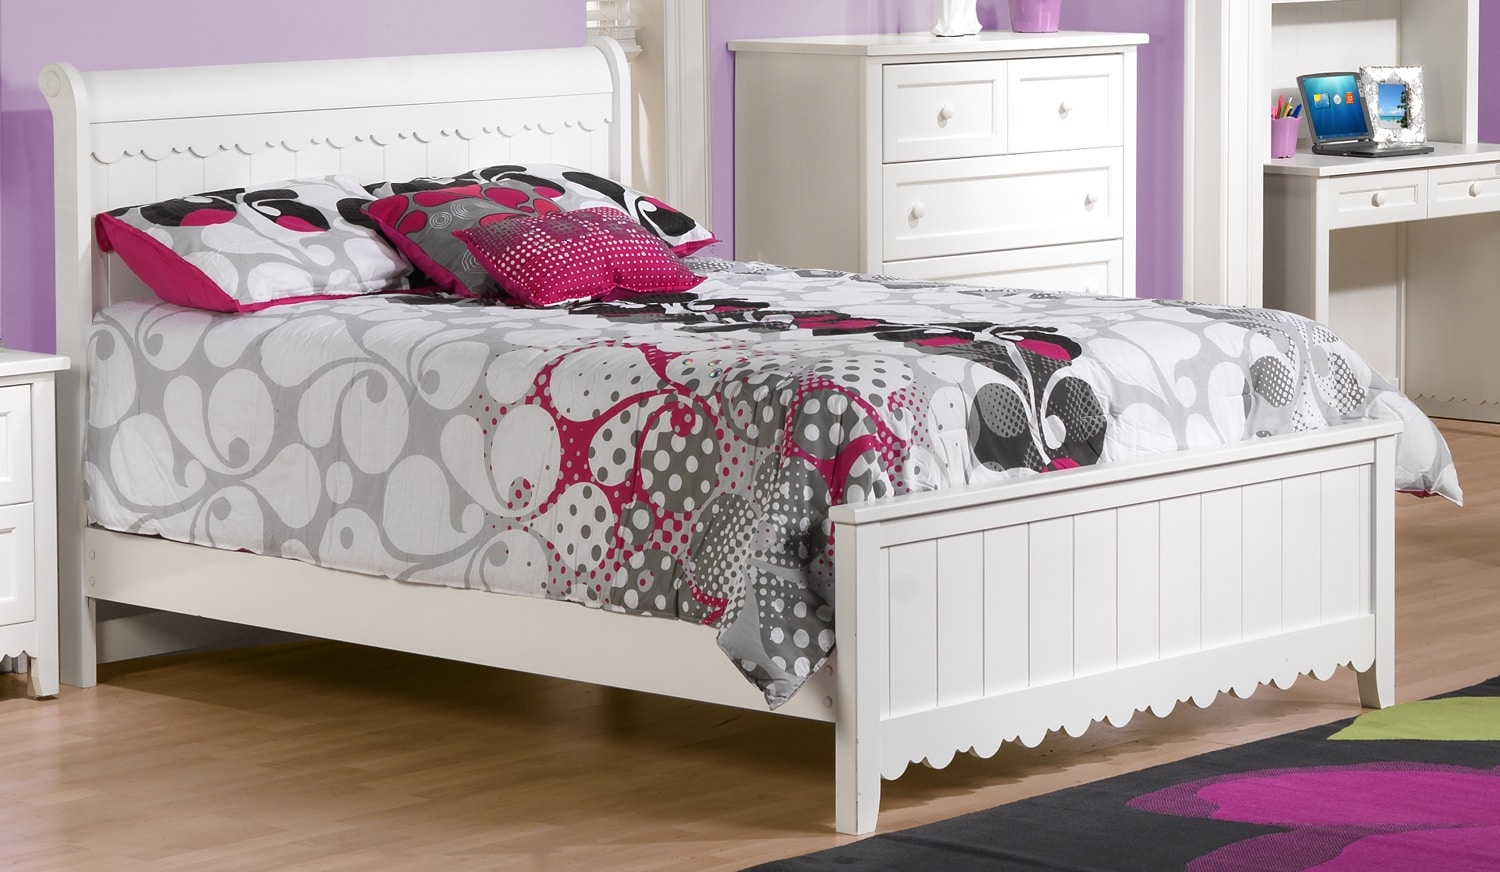 Sweetdreams Twin Bed - White